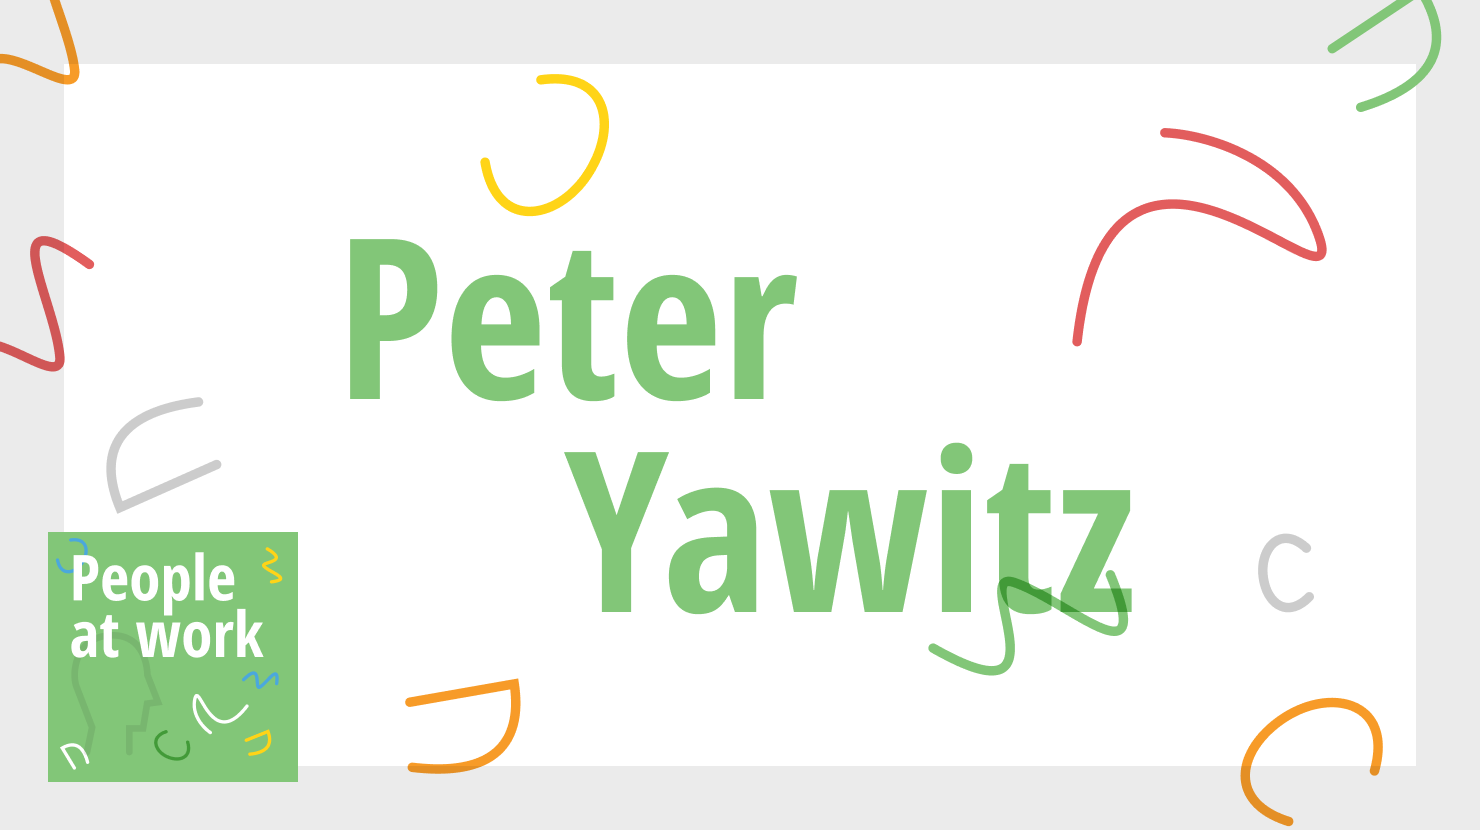 More than flips flops at work with Peter Yawitz